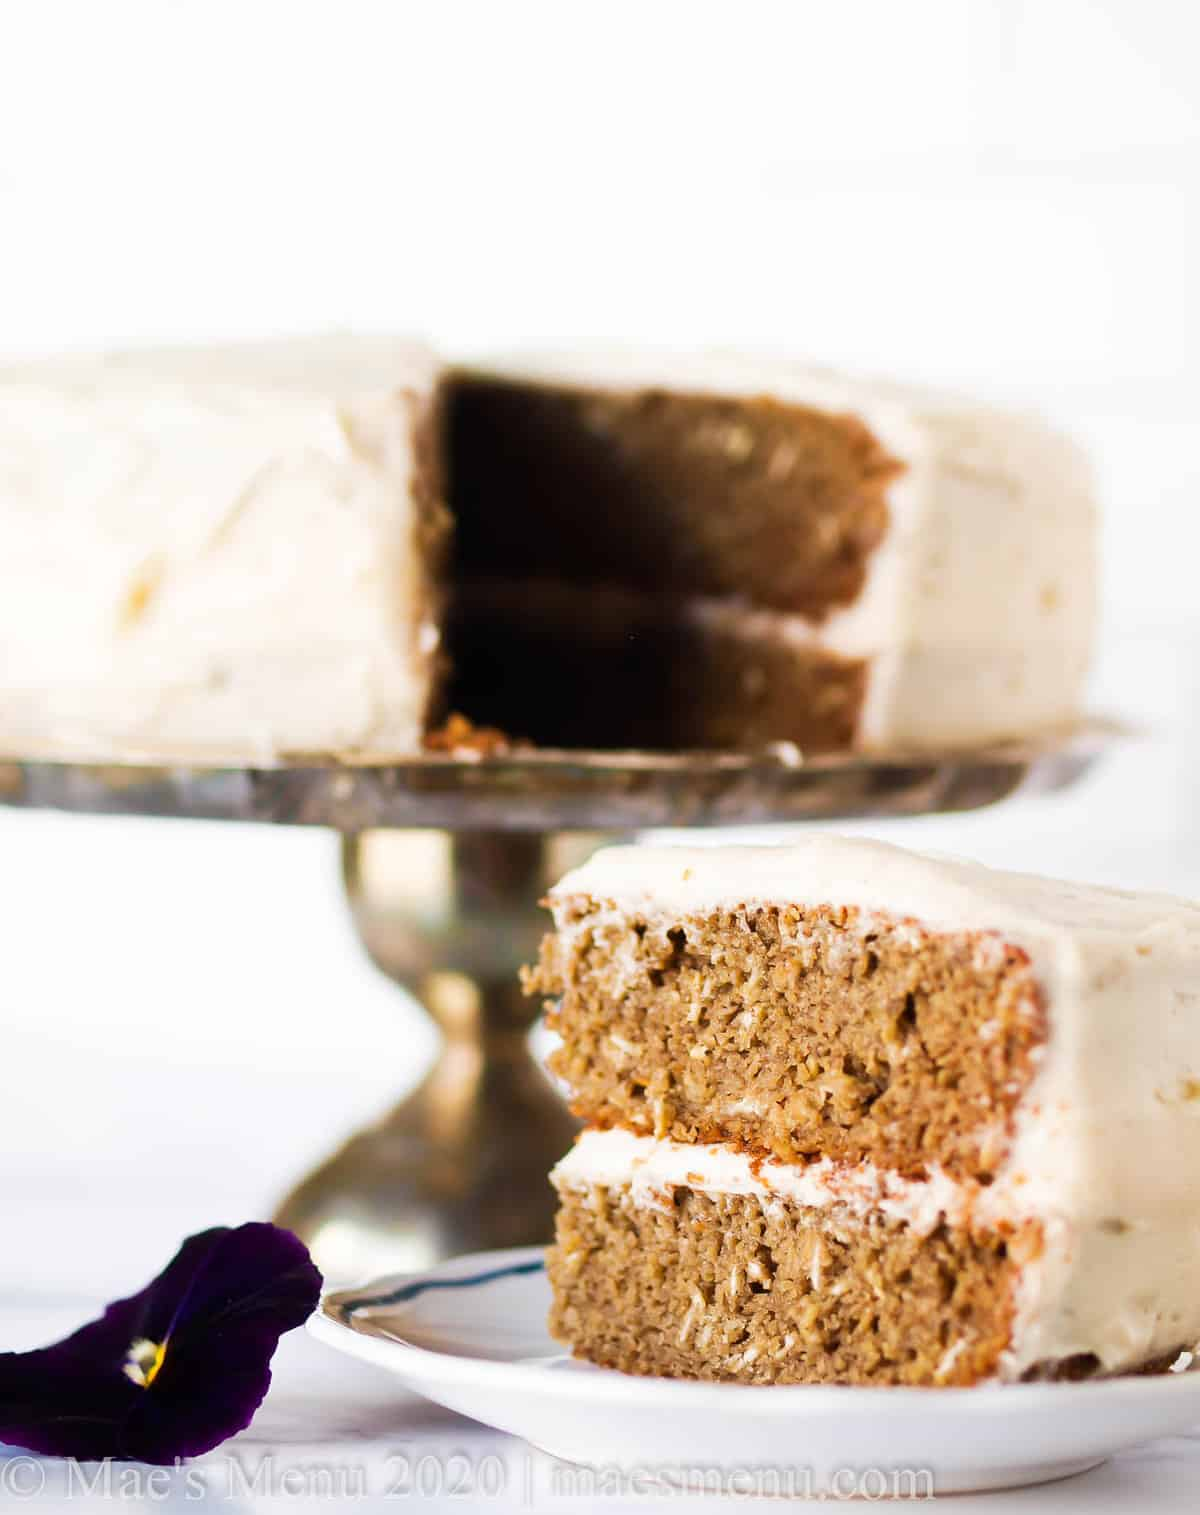 Homemade banana cake on a stand next to a slice of cake on a small dish